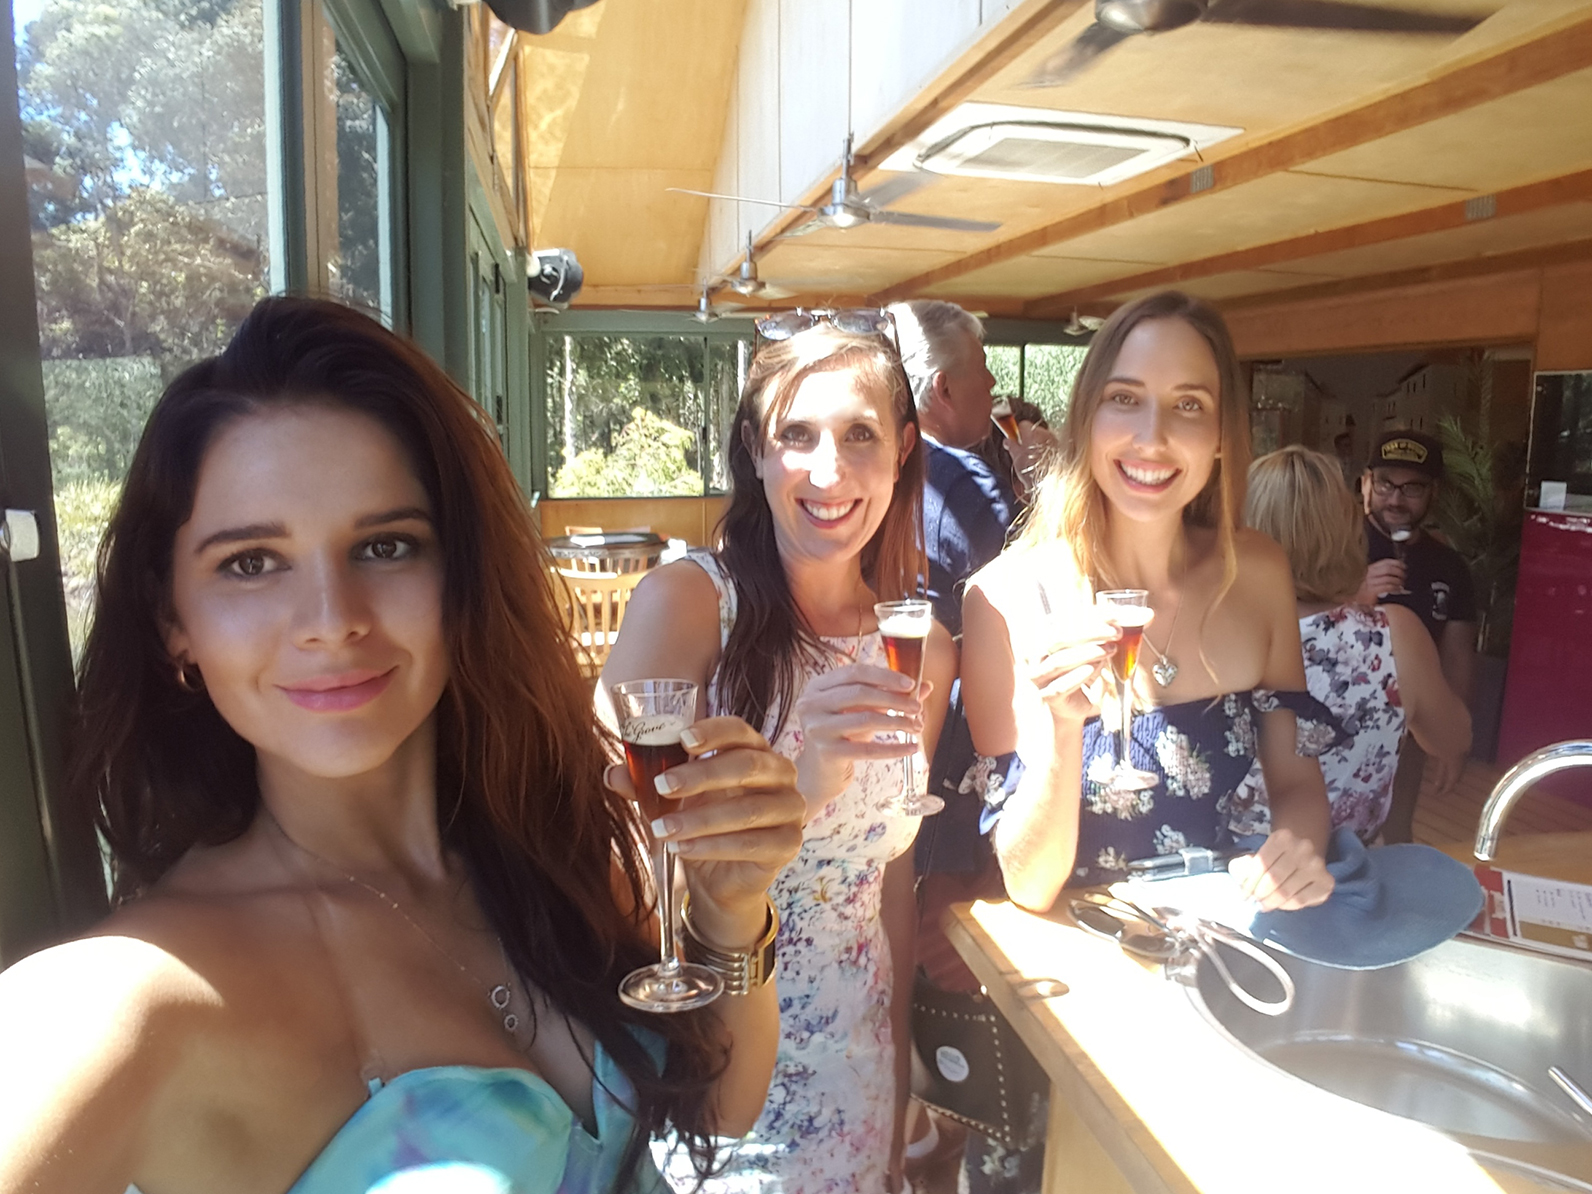 Top 10 Bars To Meet Sugar Daddy In Perth. Best Pick Up Bars In Perth